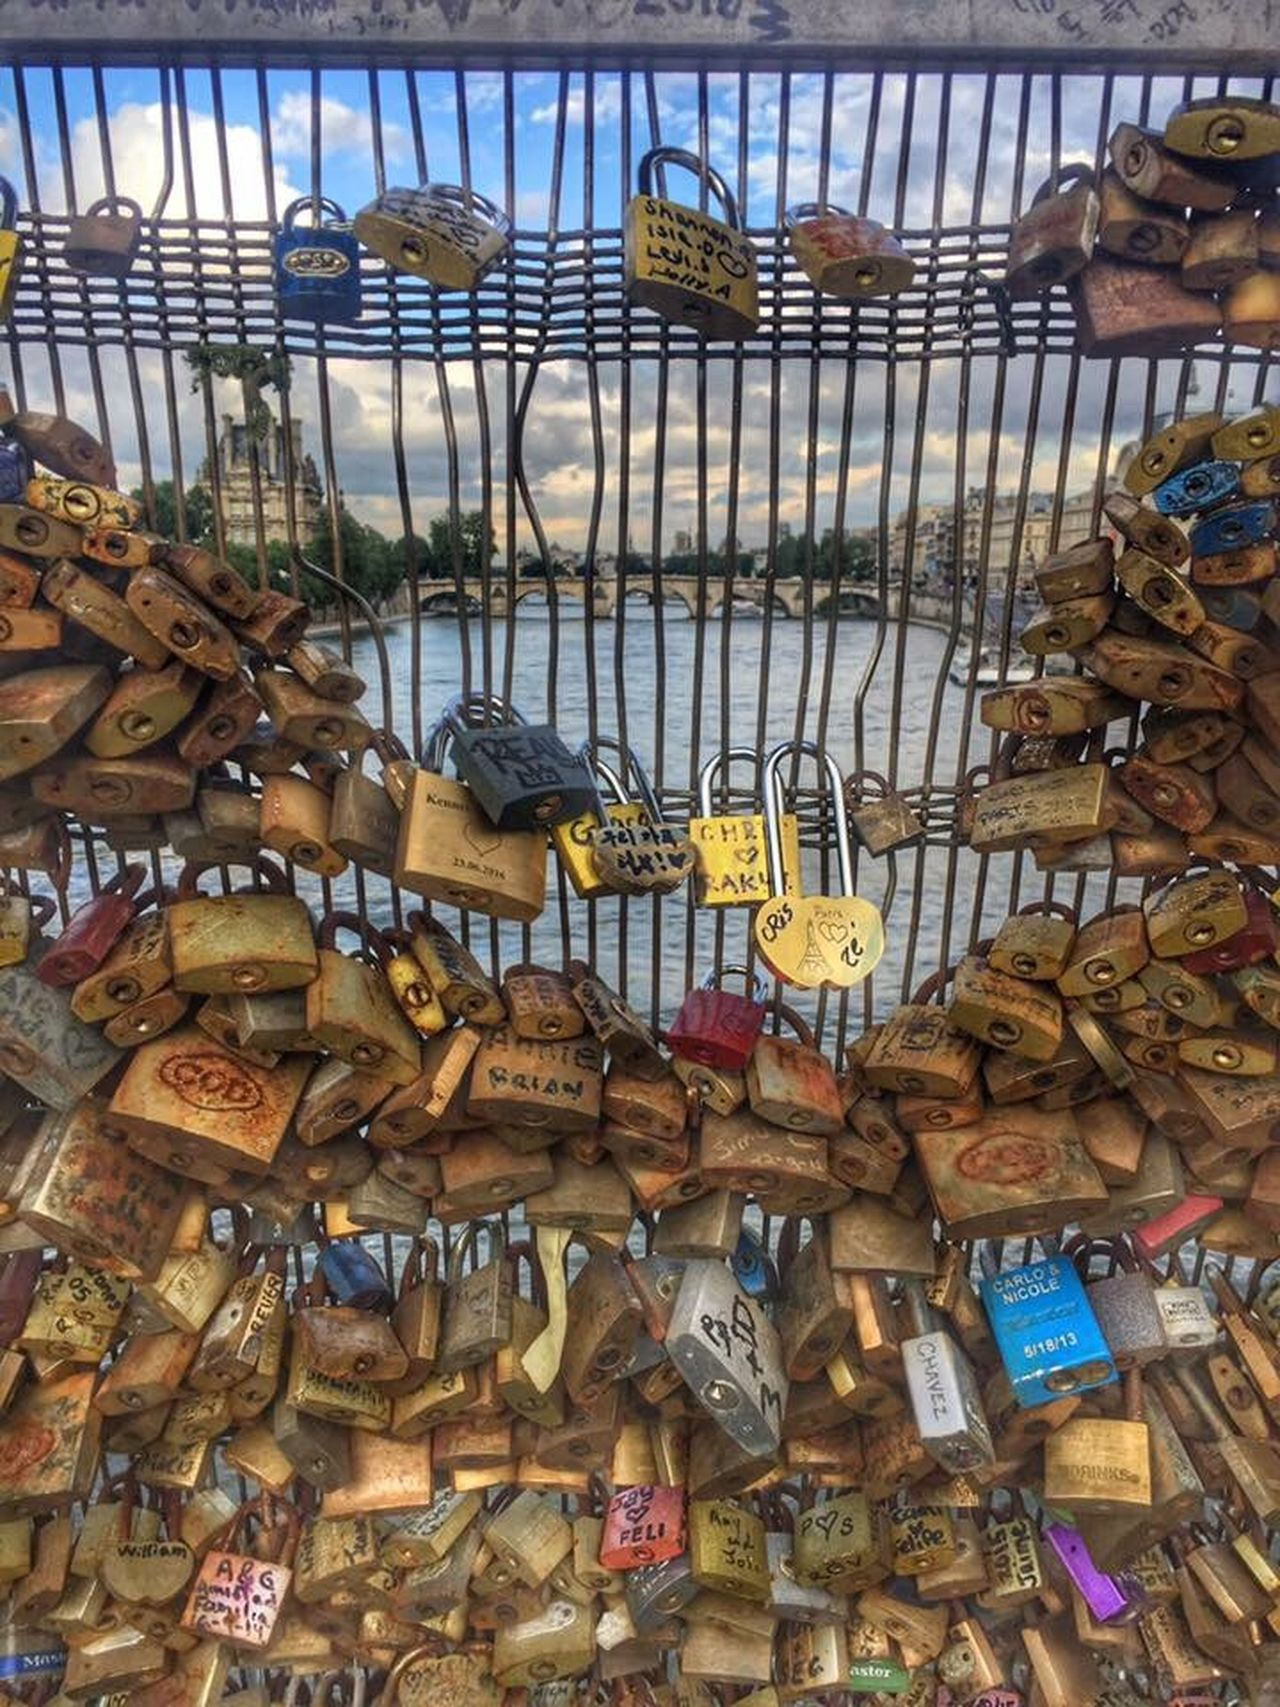 Paris Large Group Of Objects Lock No People Love Lock Bridge Love Locks Bridge Love Locks Beautifully Organized